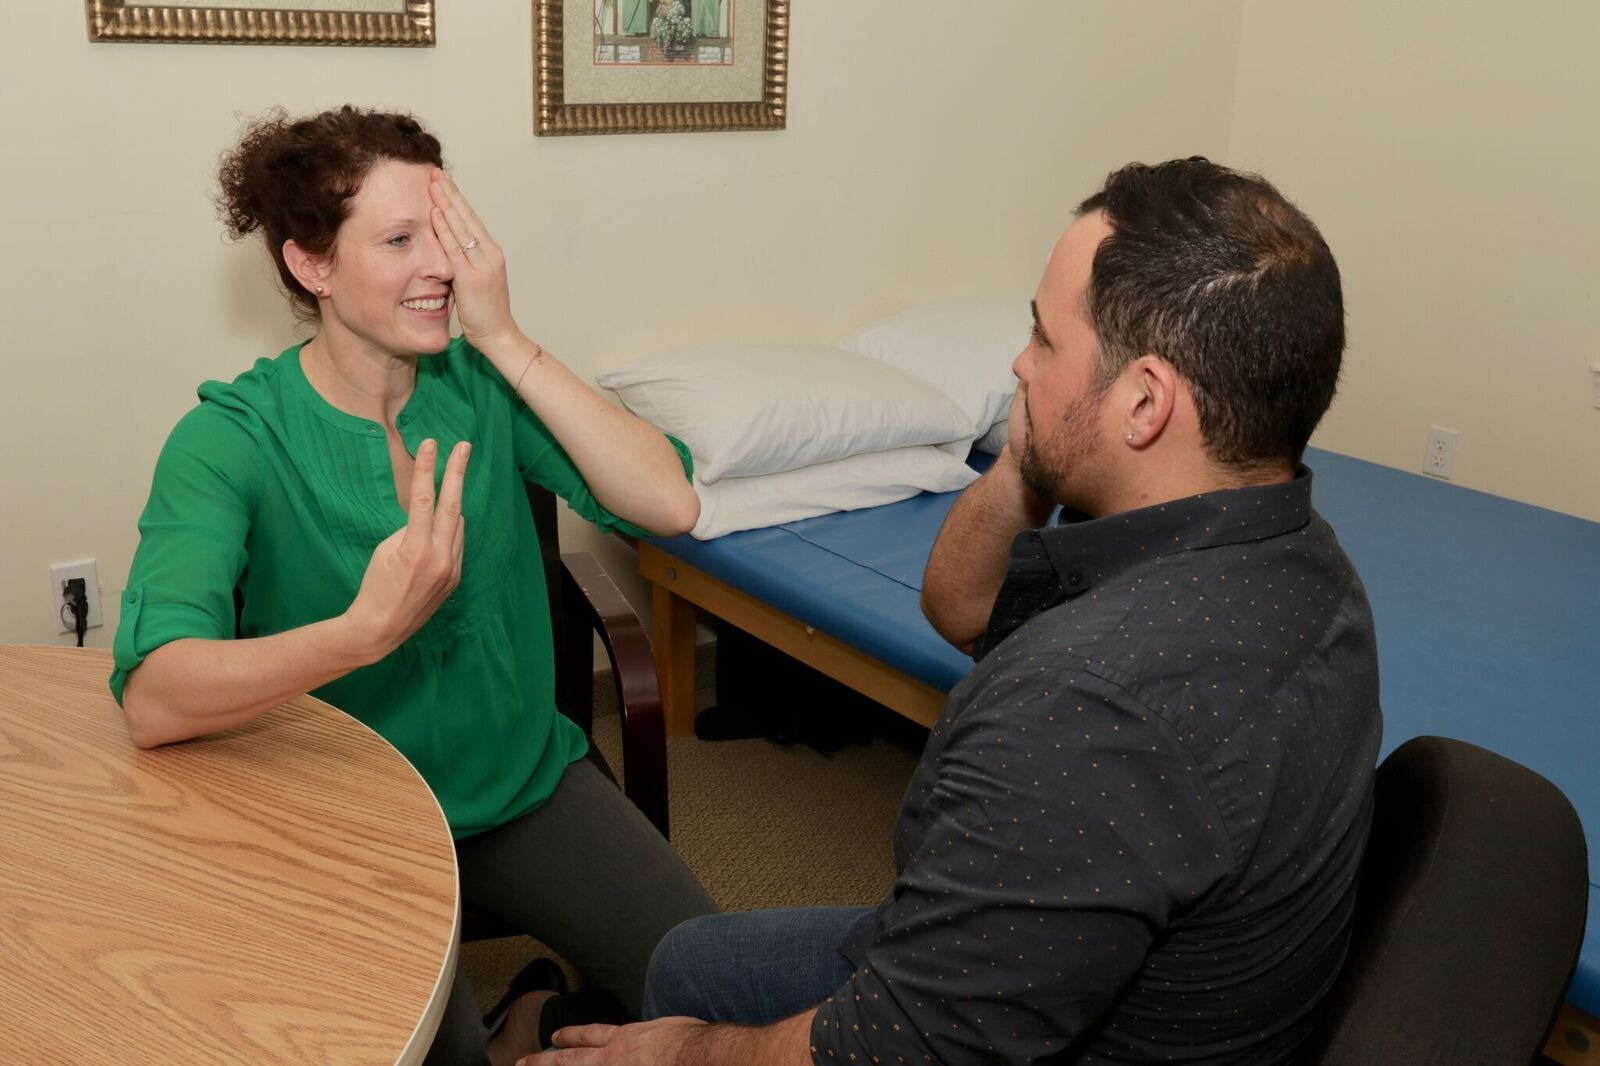 The occupational therapists performs quadrant visual field testing to help determine functional visual field.